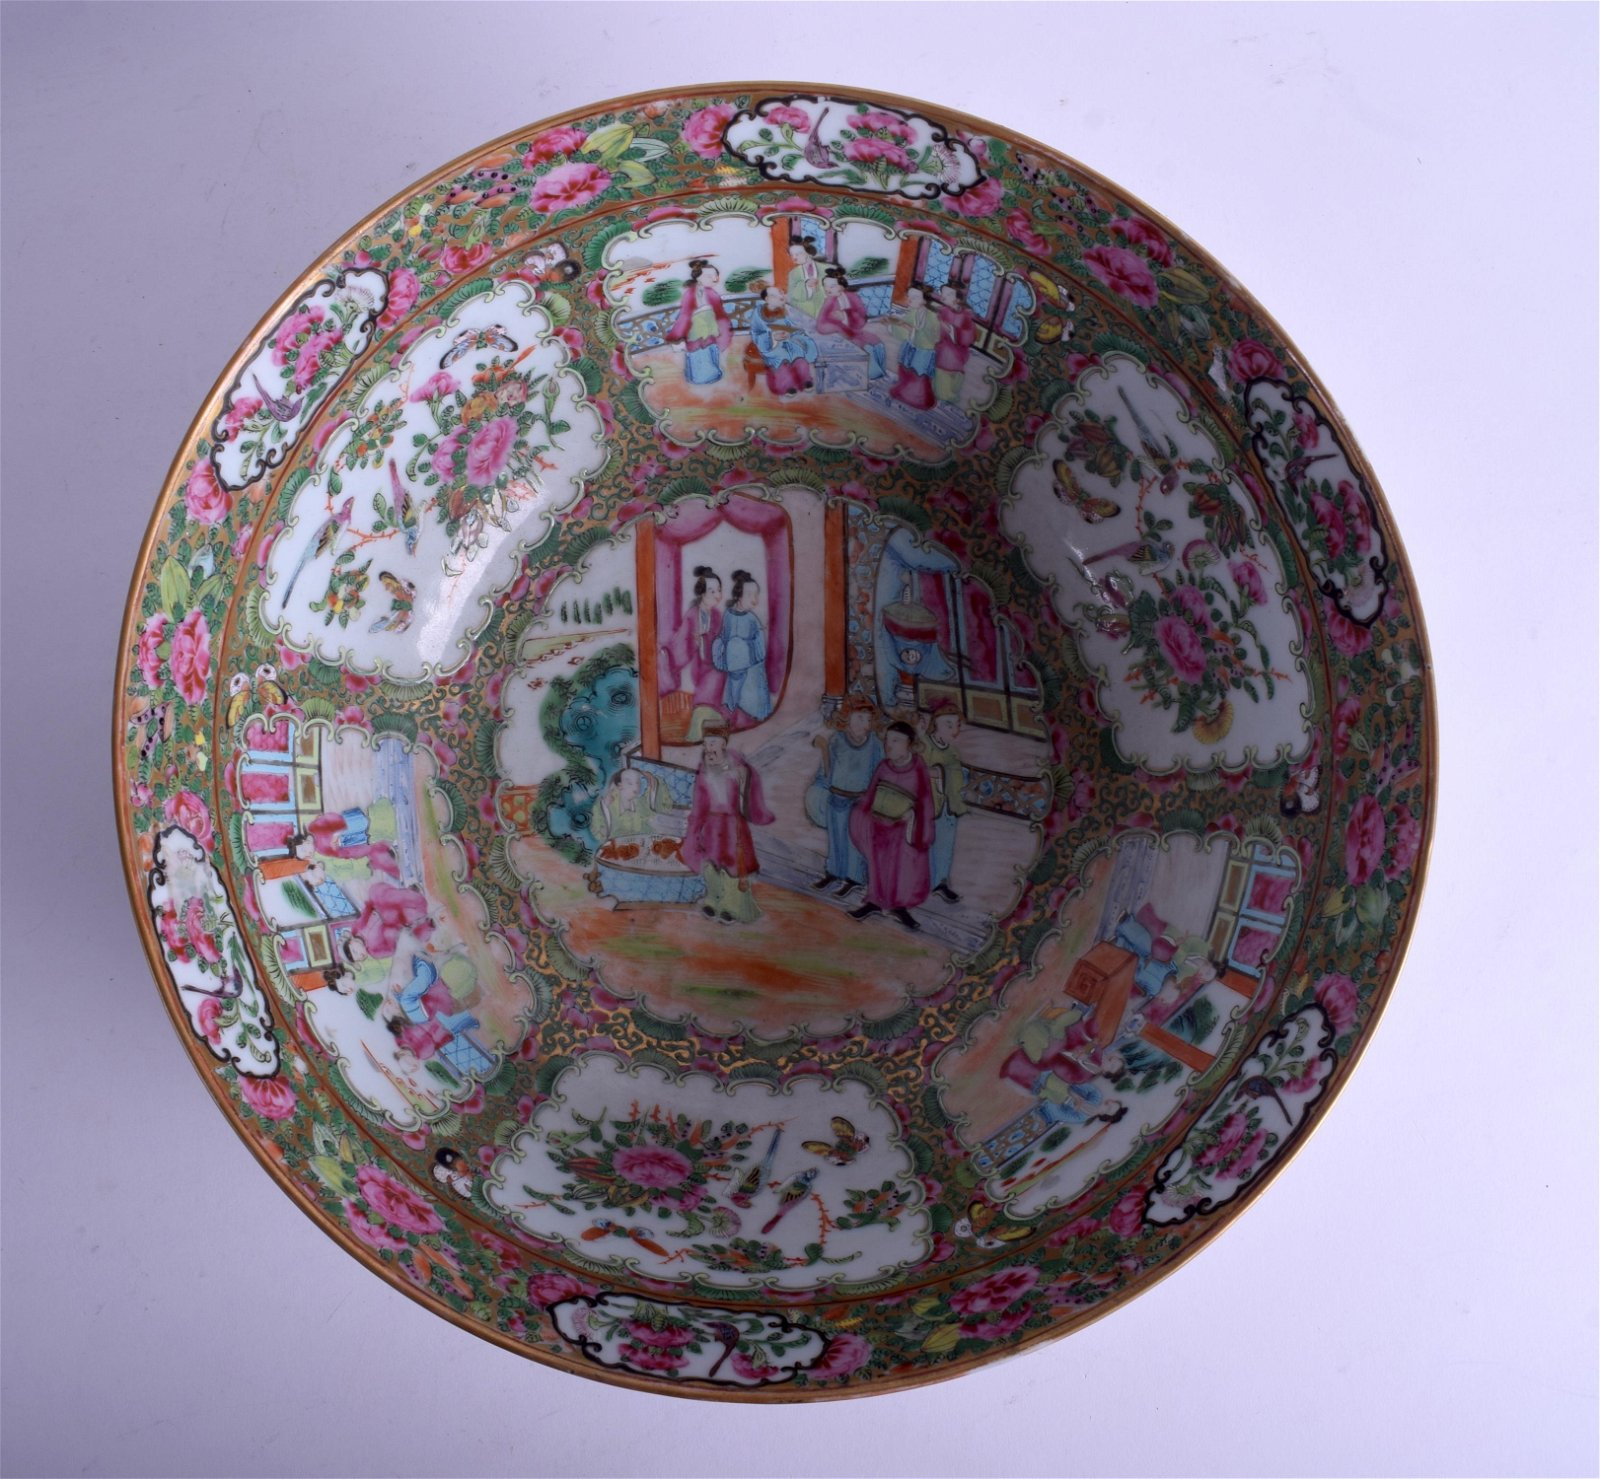 A LARGE 19TH CENTURY CHINESE FAMILLE ROSE CANTON BOWL